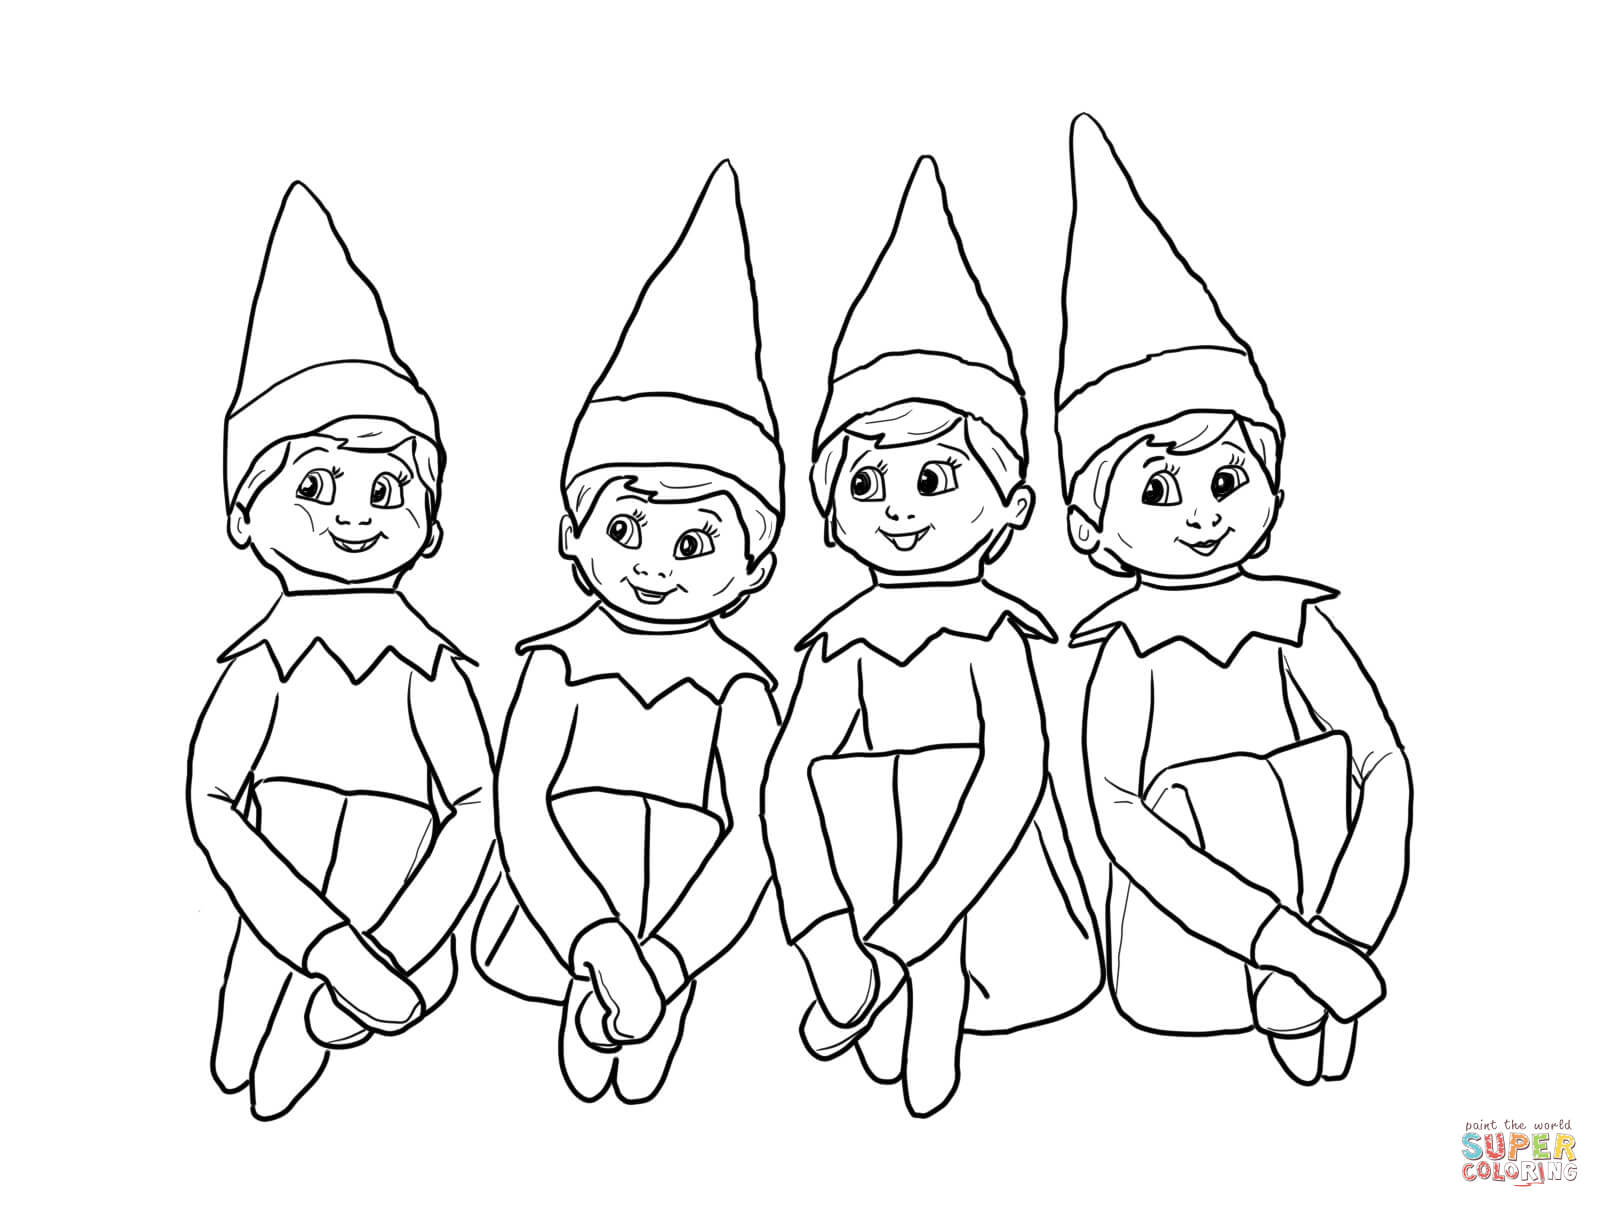 21 Excellent Photo Of Elf On The Shelf Coloring Pages Birijusrhbirijus: Elf On The Shelf Birthday Coloring Pages At Baymontmadison.com